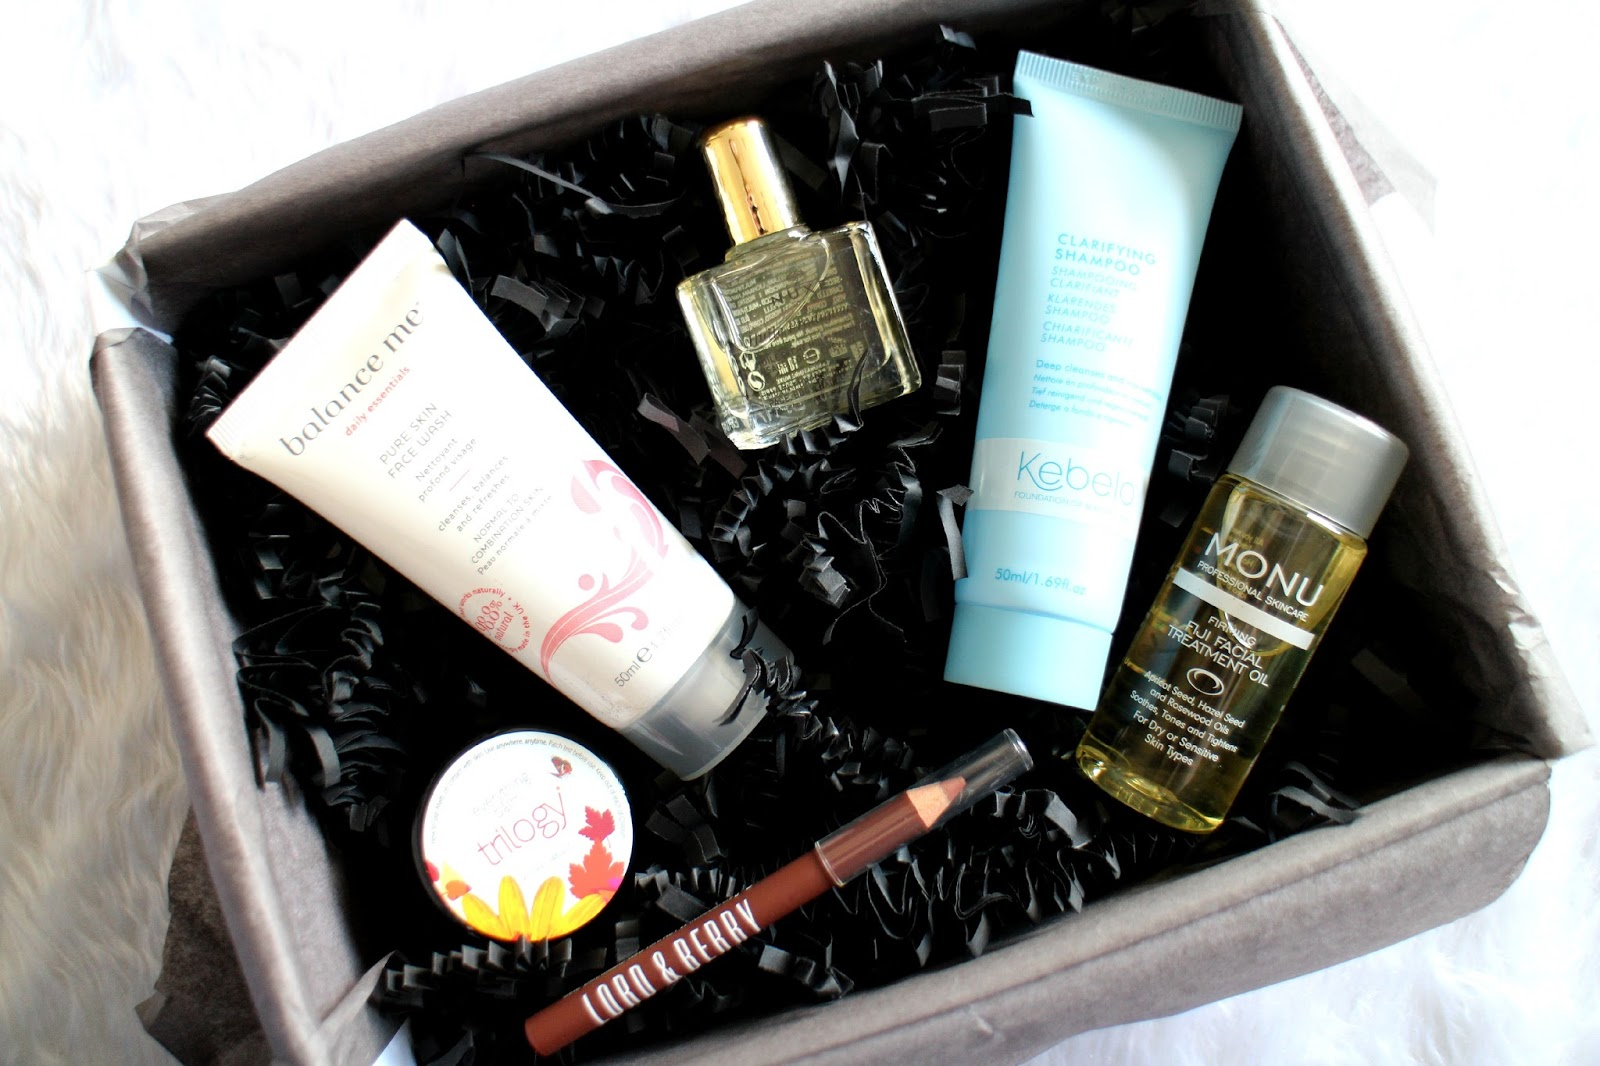 Look Fantastic Beauty Box Review 2015